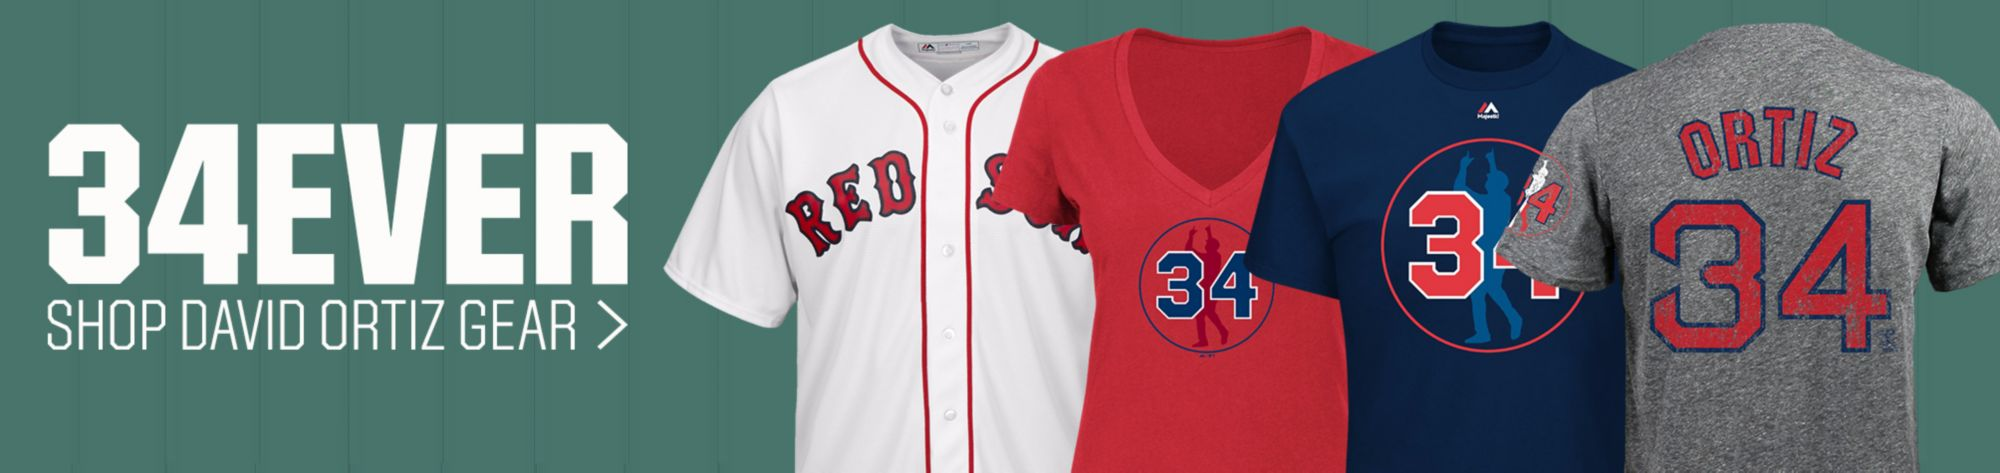 Shop David Ortiz Gear